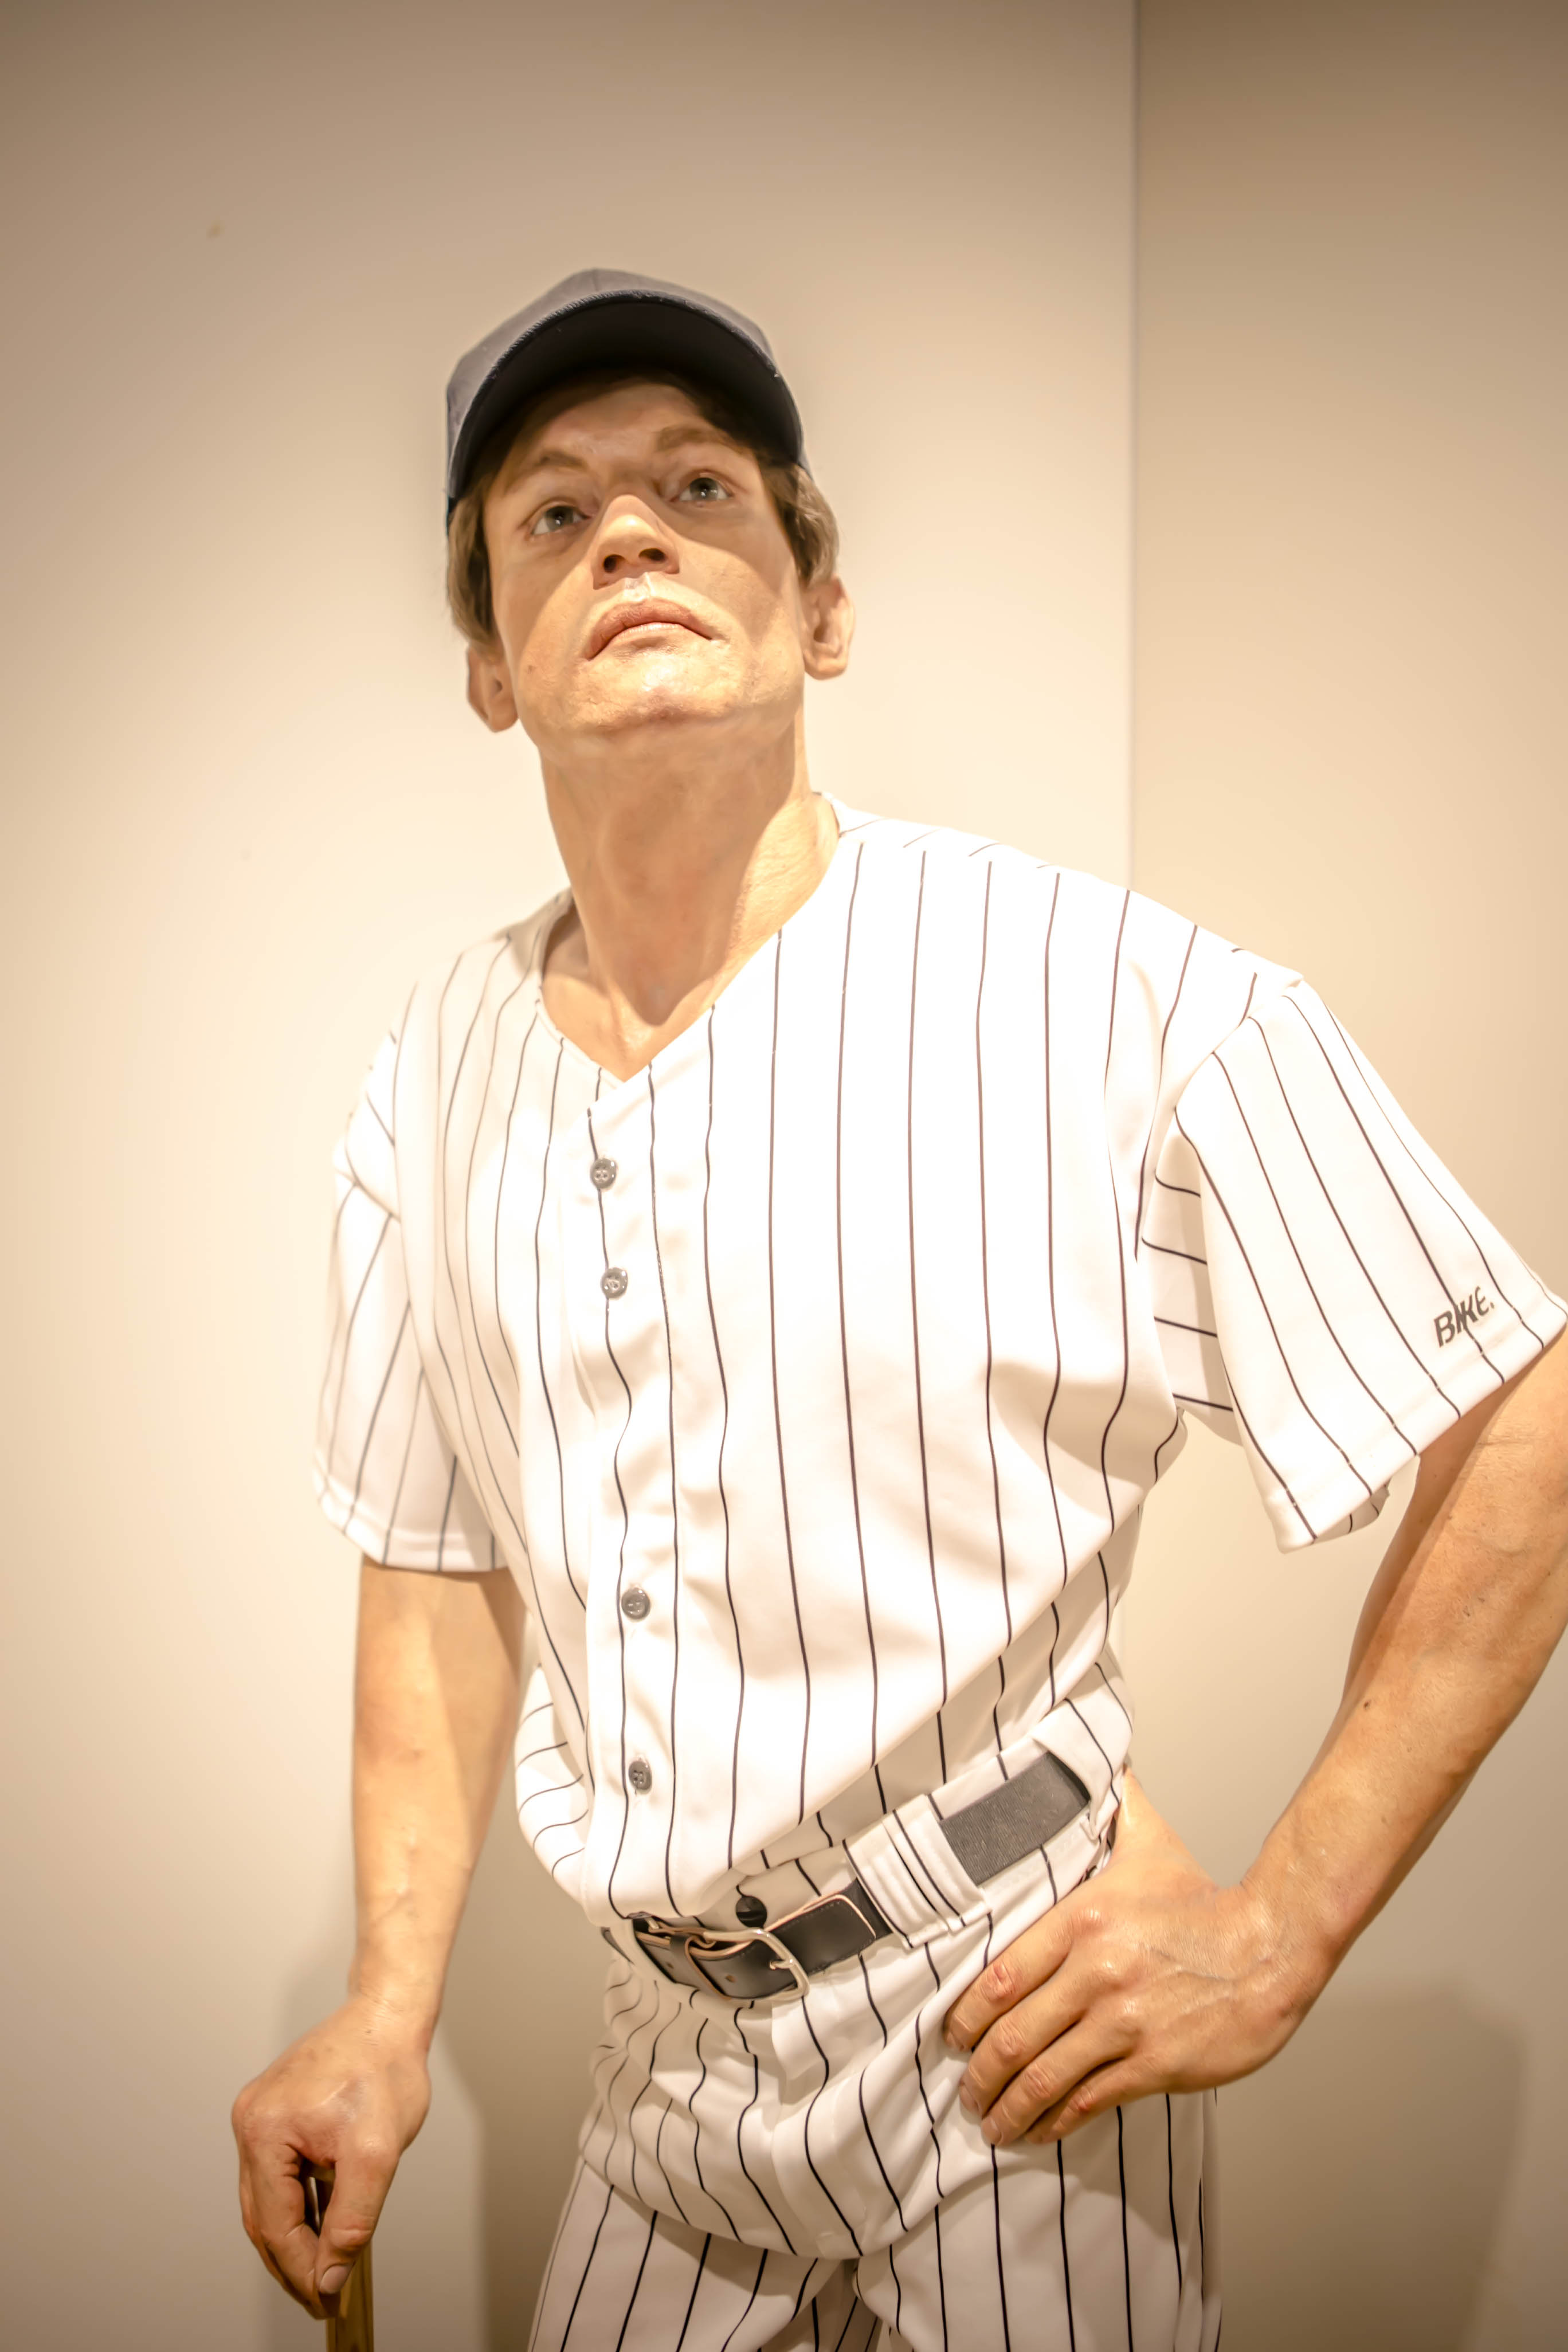 lifelike sculpture of baseball player